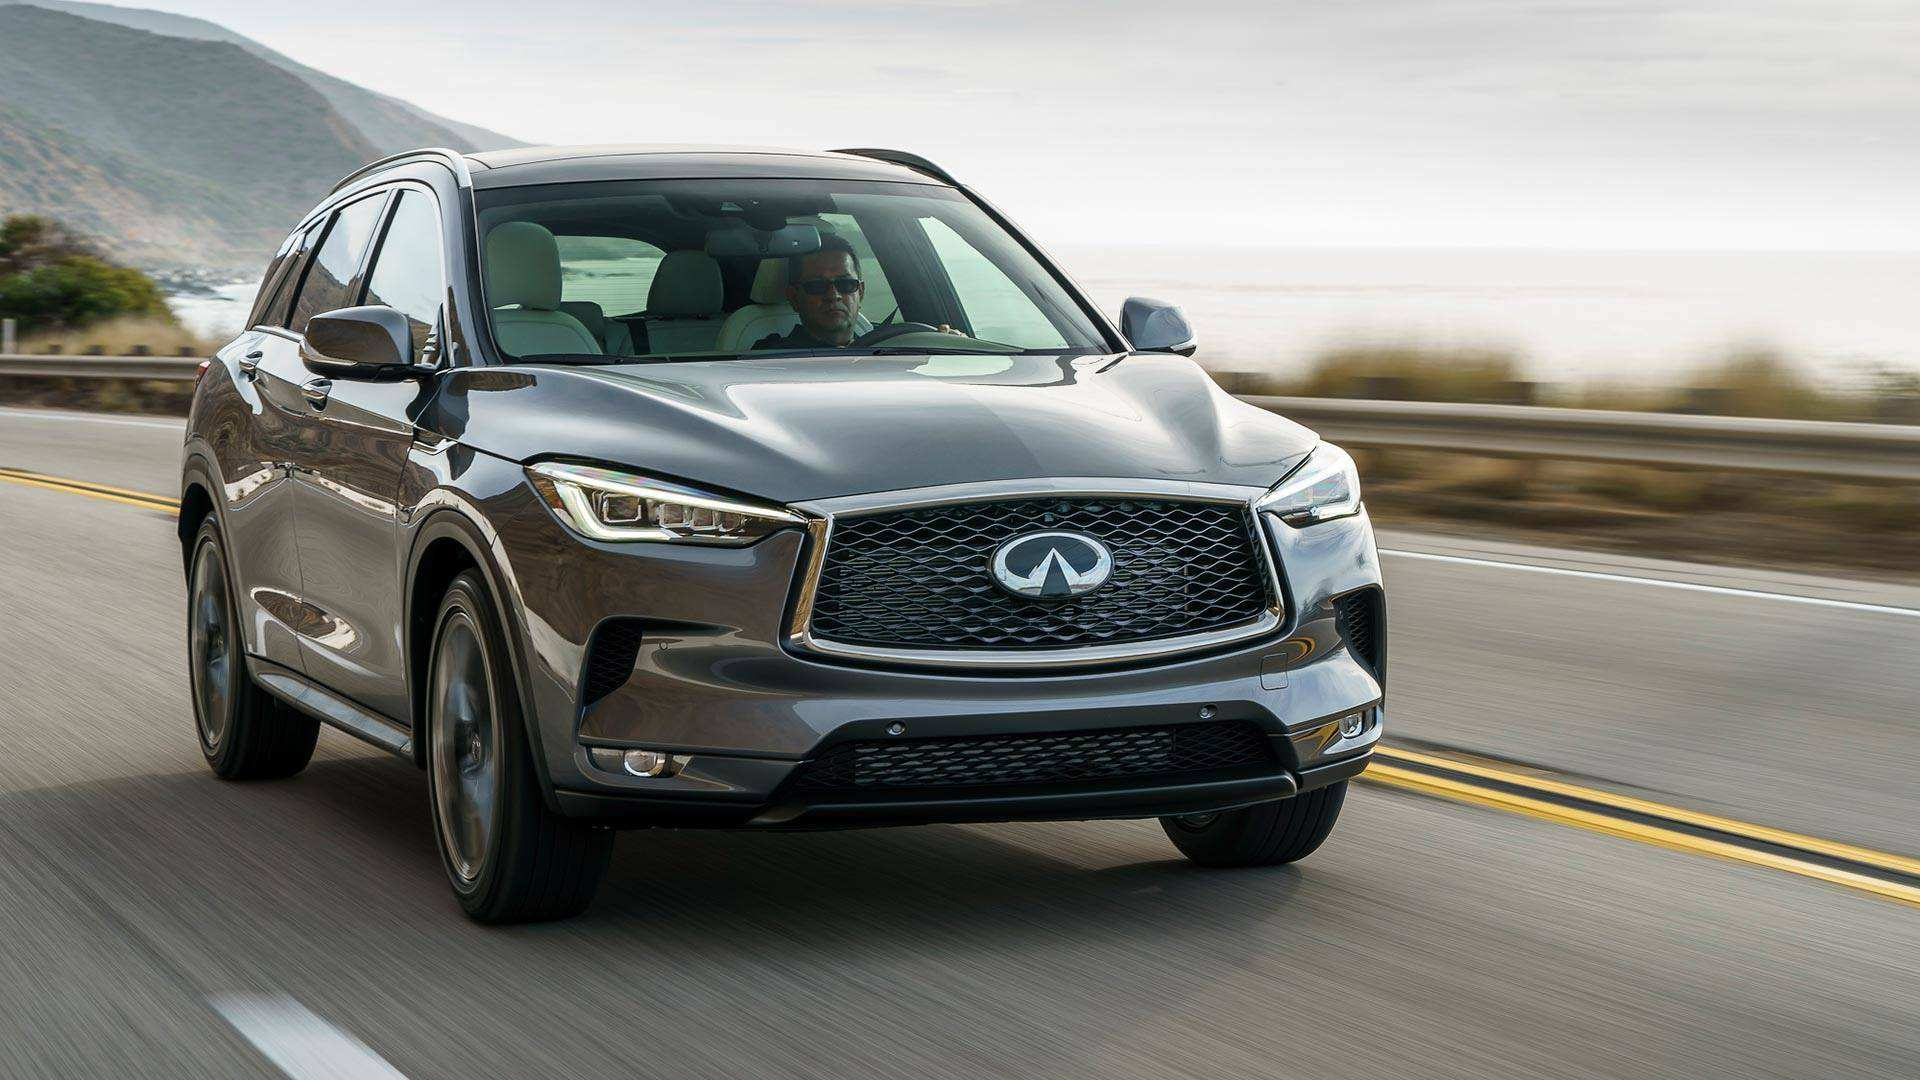 84 Great 2019 Infiniti Vehicles Picture New Review for 2019 Infiniti Vehicles Picture